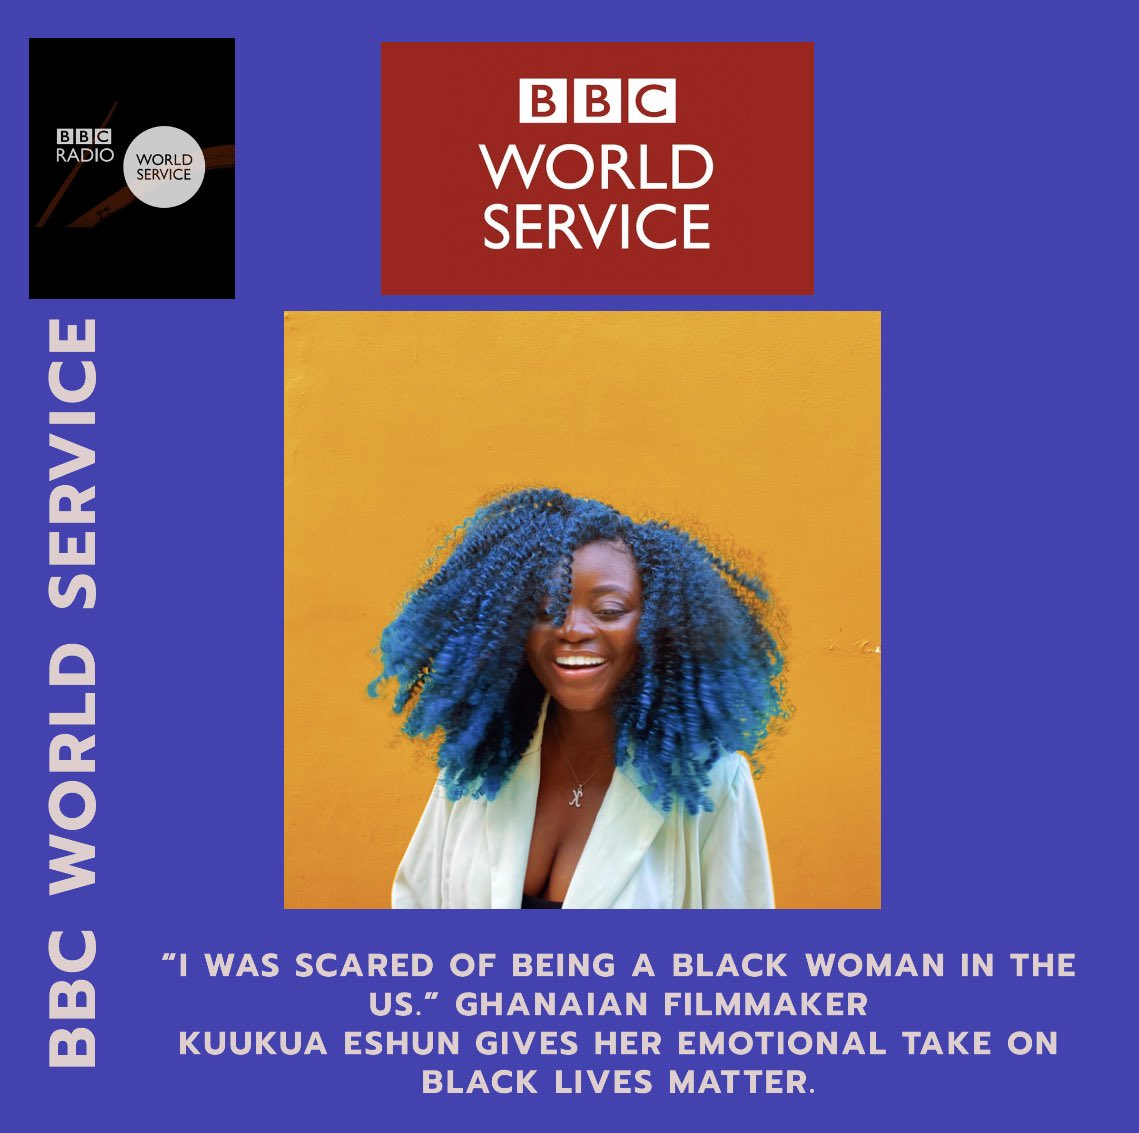 Spoke to @bbcworldservice x @BBCRadioLondon about my journey. Why I moved to Ghana and how it changed my life + plus what it means for me to be a filmmaker.  Tune in ❤️ https://t.co/1cmnShKhZh